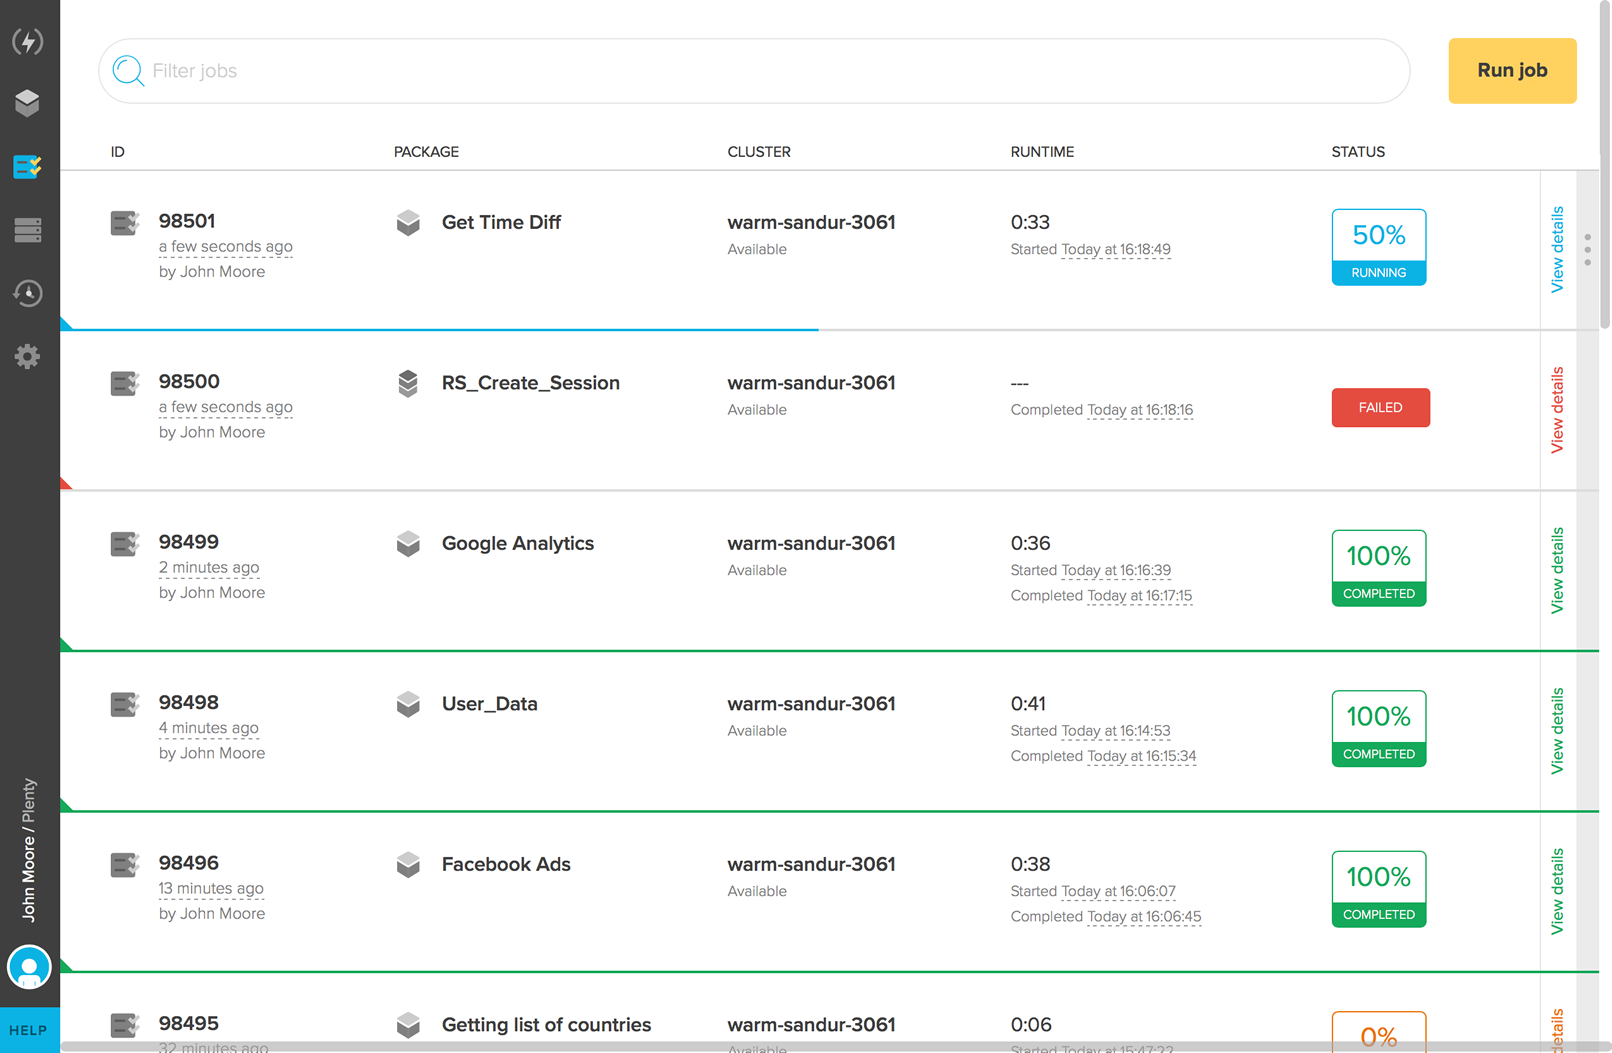 Extracts user data from third-party sources like Facebook Ads, MixPanel, Salesforce, or Google Analytics so teams can customize their data solution stack